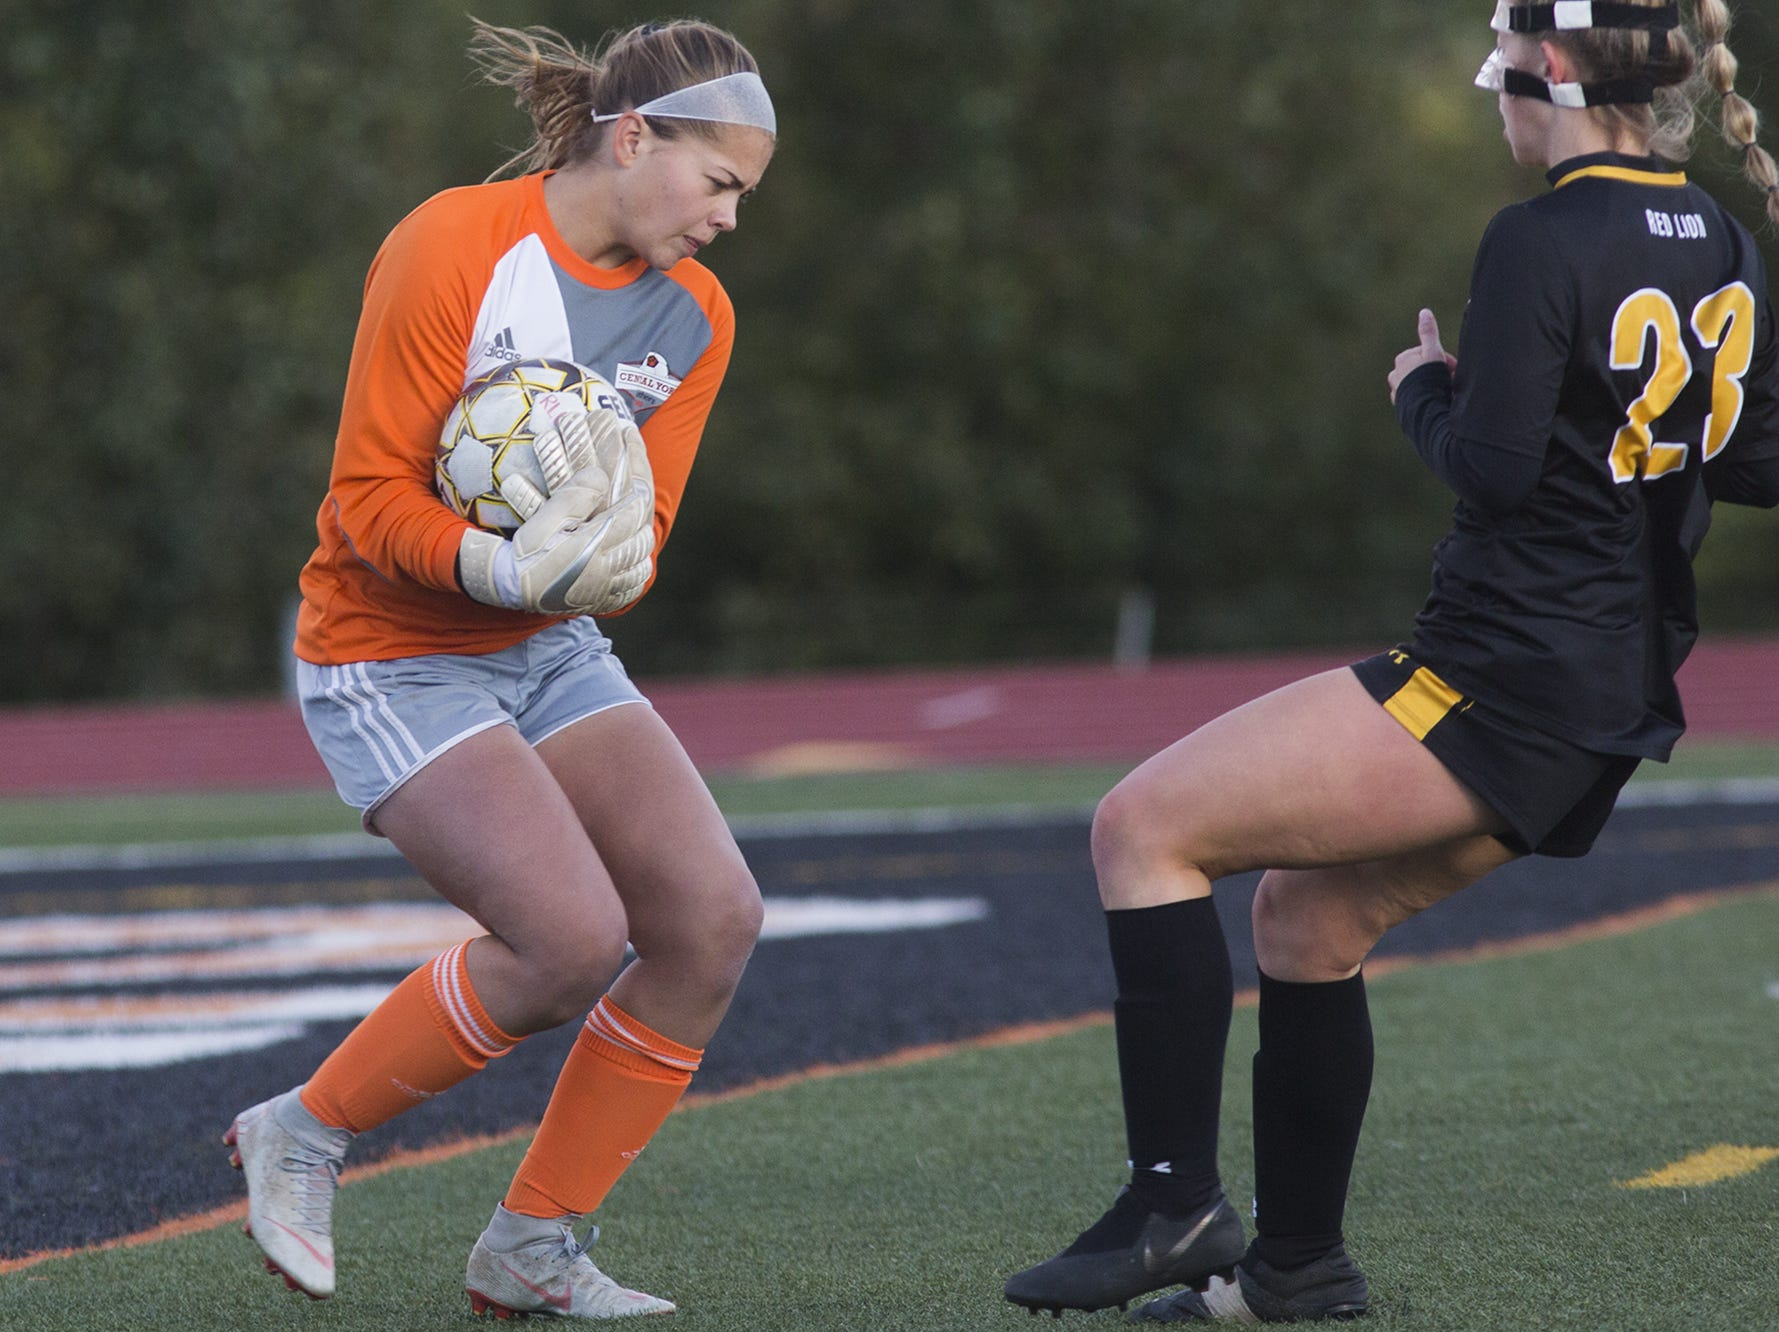 Central York goalkeeper Morgan Wood makes a save. Central York defeats Red Lion 1-0 in the YAIAA girls' soccer championship game at Northeastern High School in Manchester, Saturday, October 20, 2018.